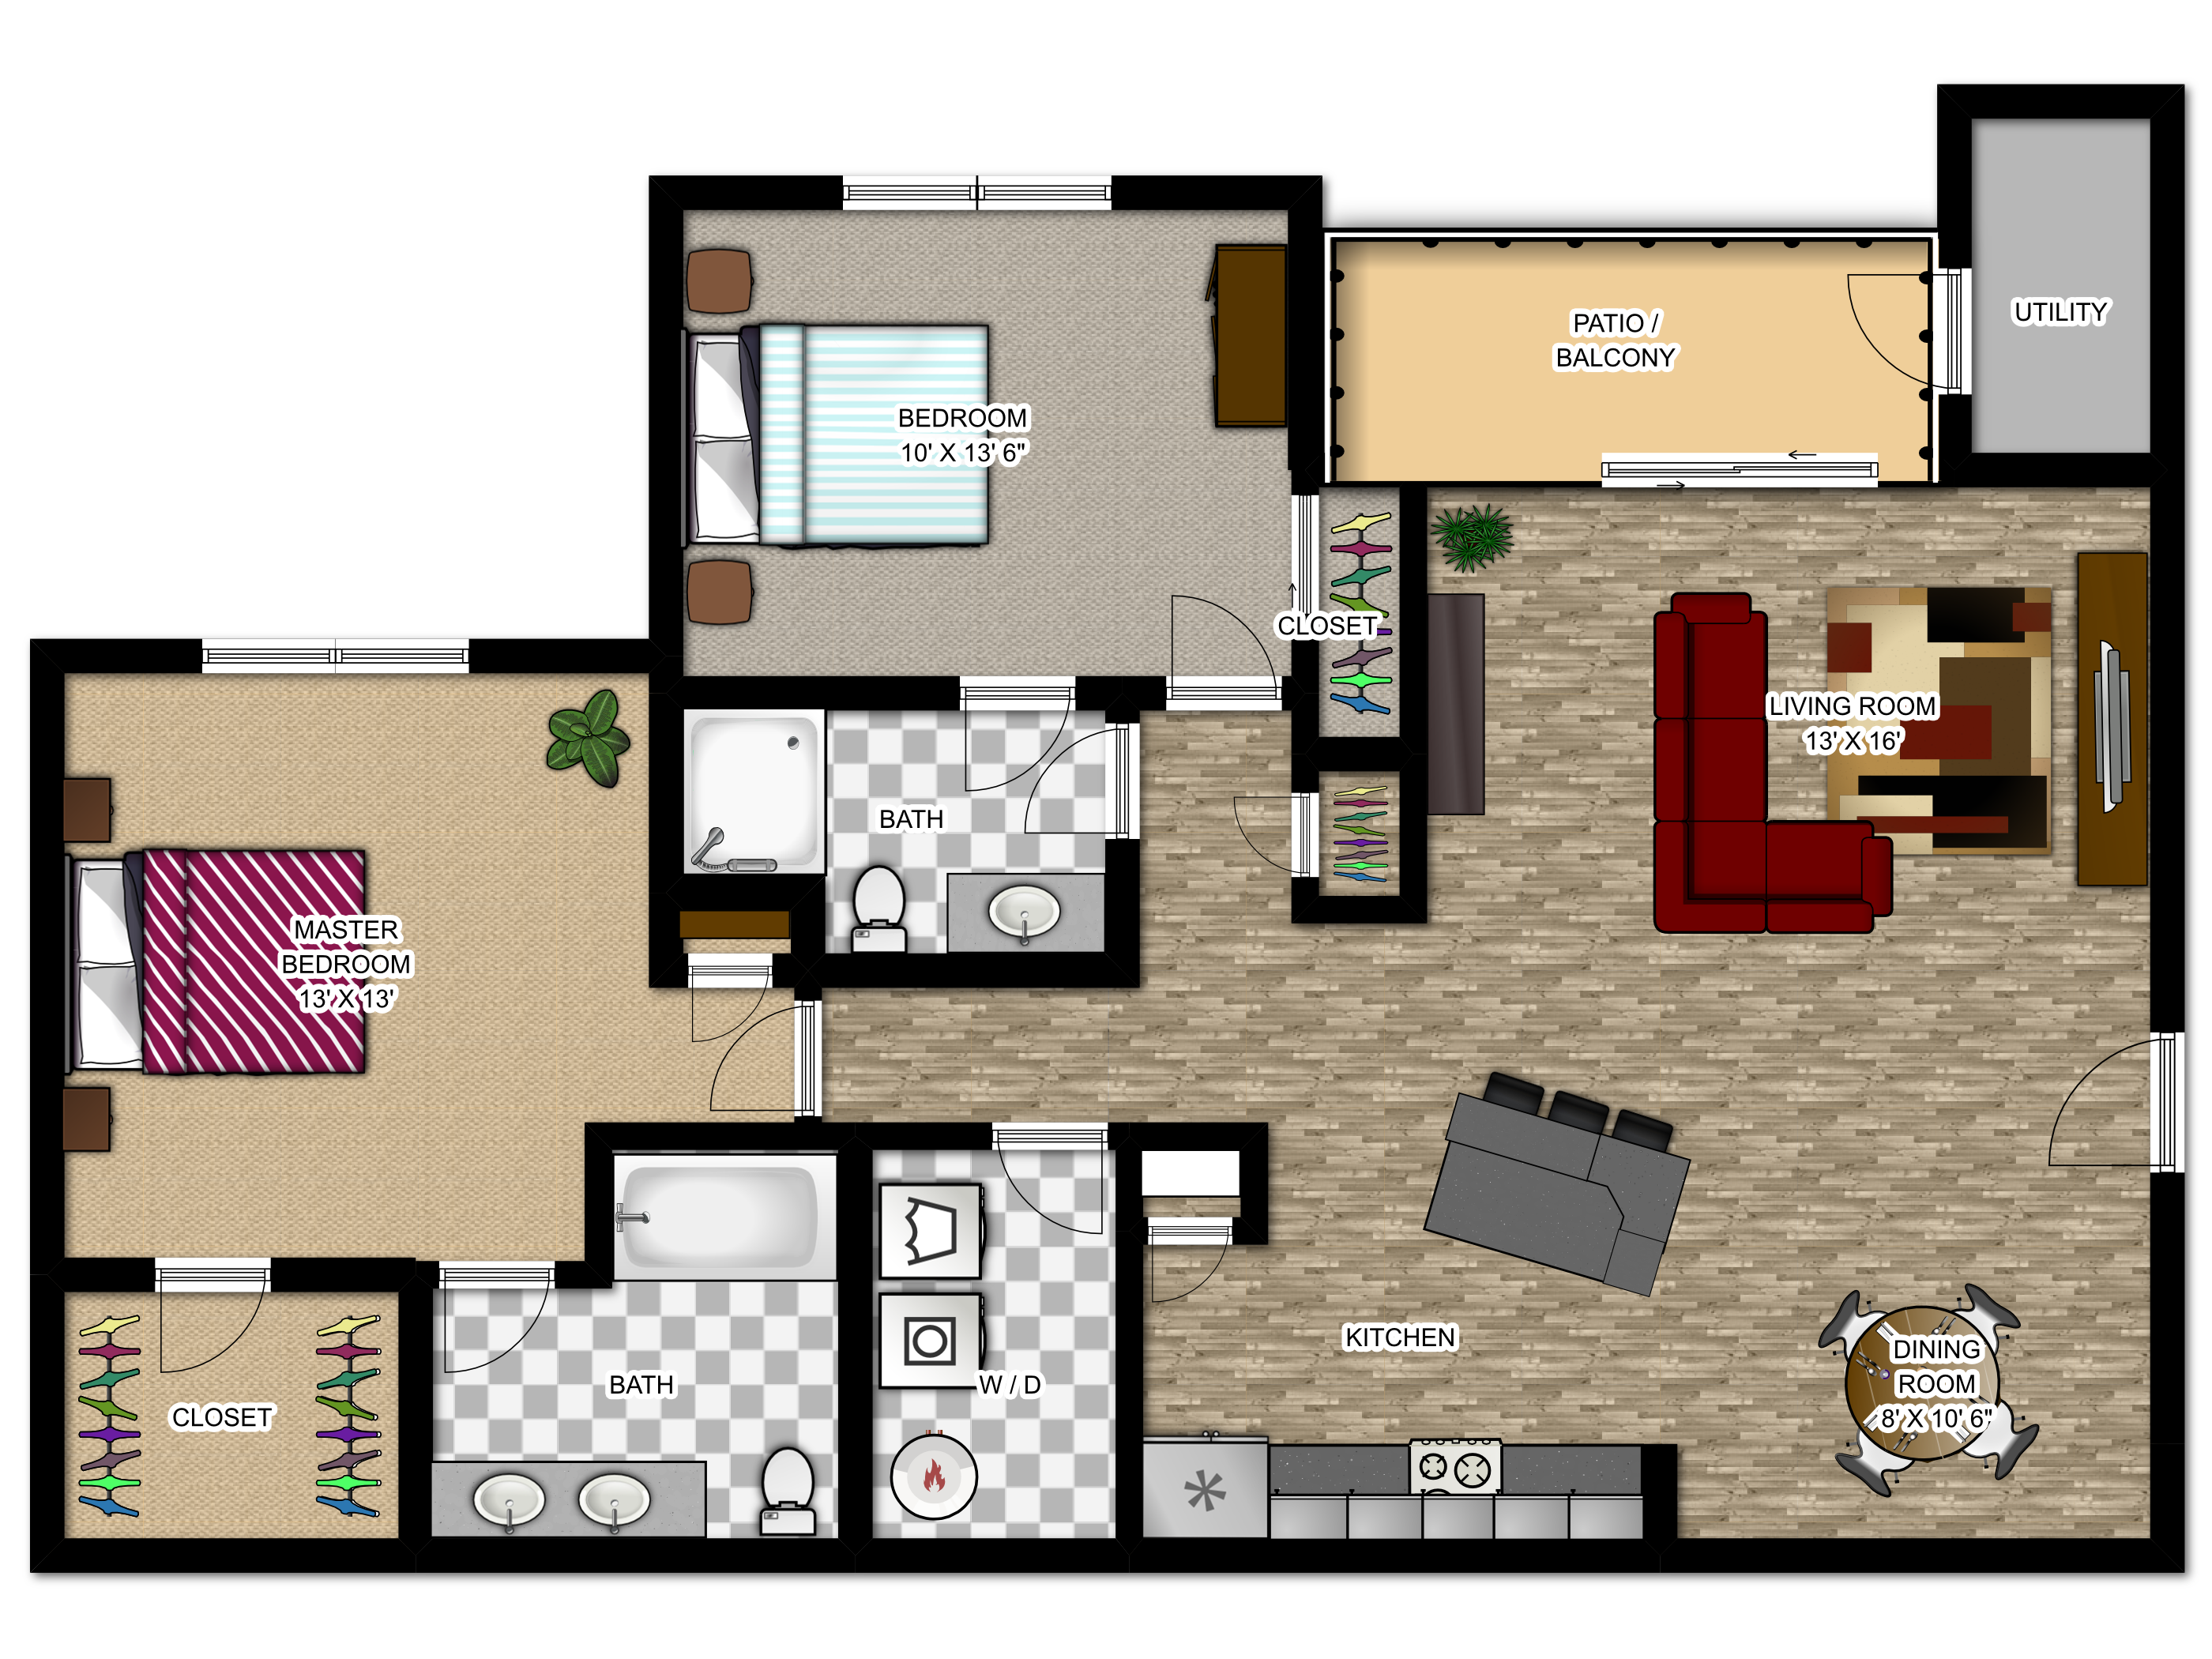 Meadowood Apartments Floor Plans - The Sonoma